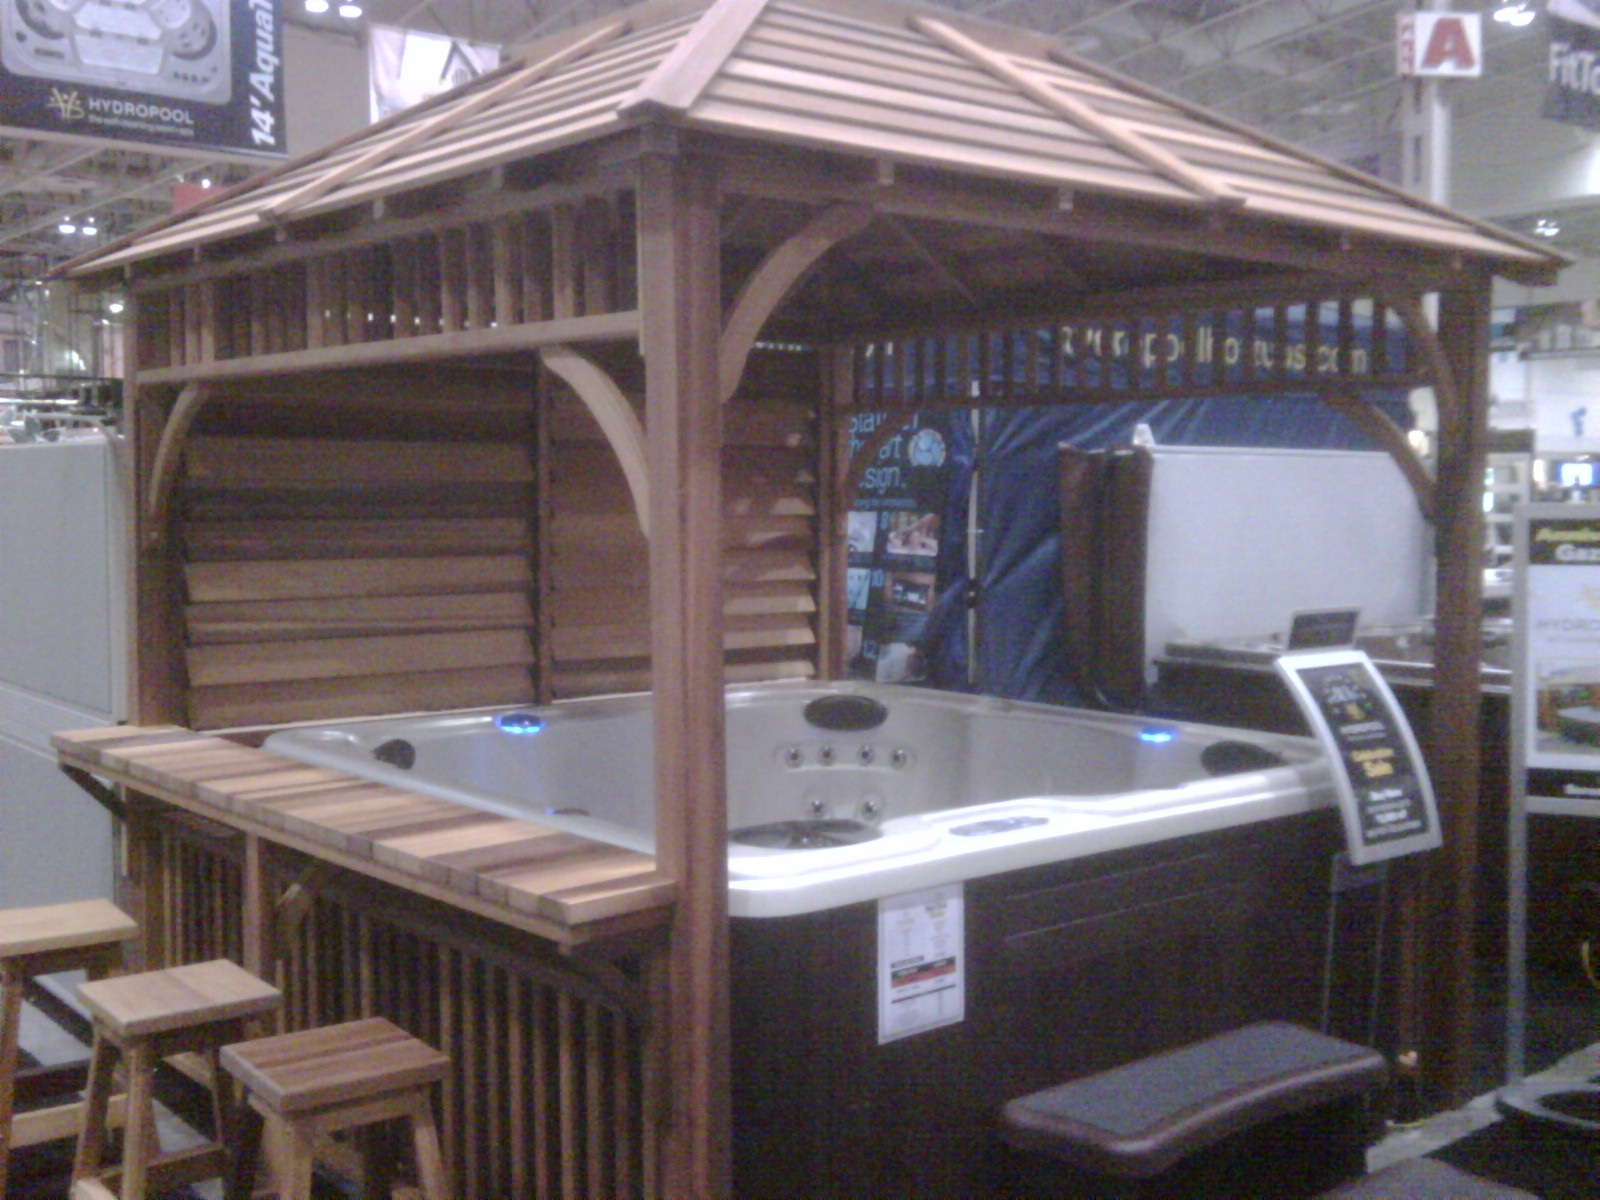 Hot Tubs At Toronto Home Show